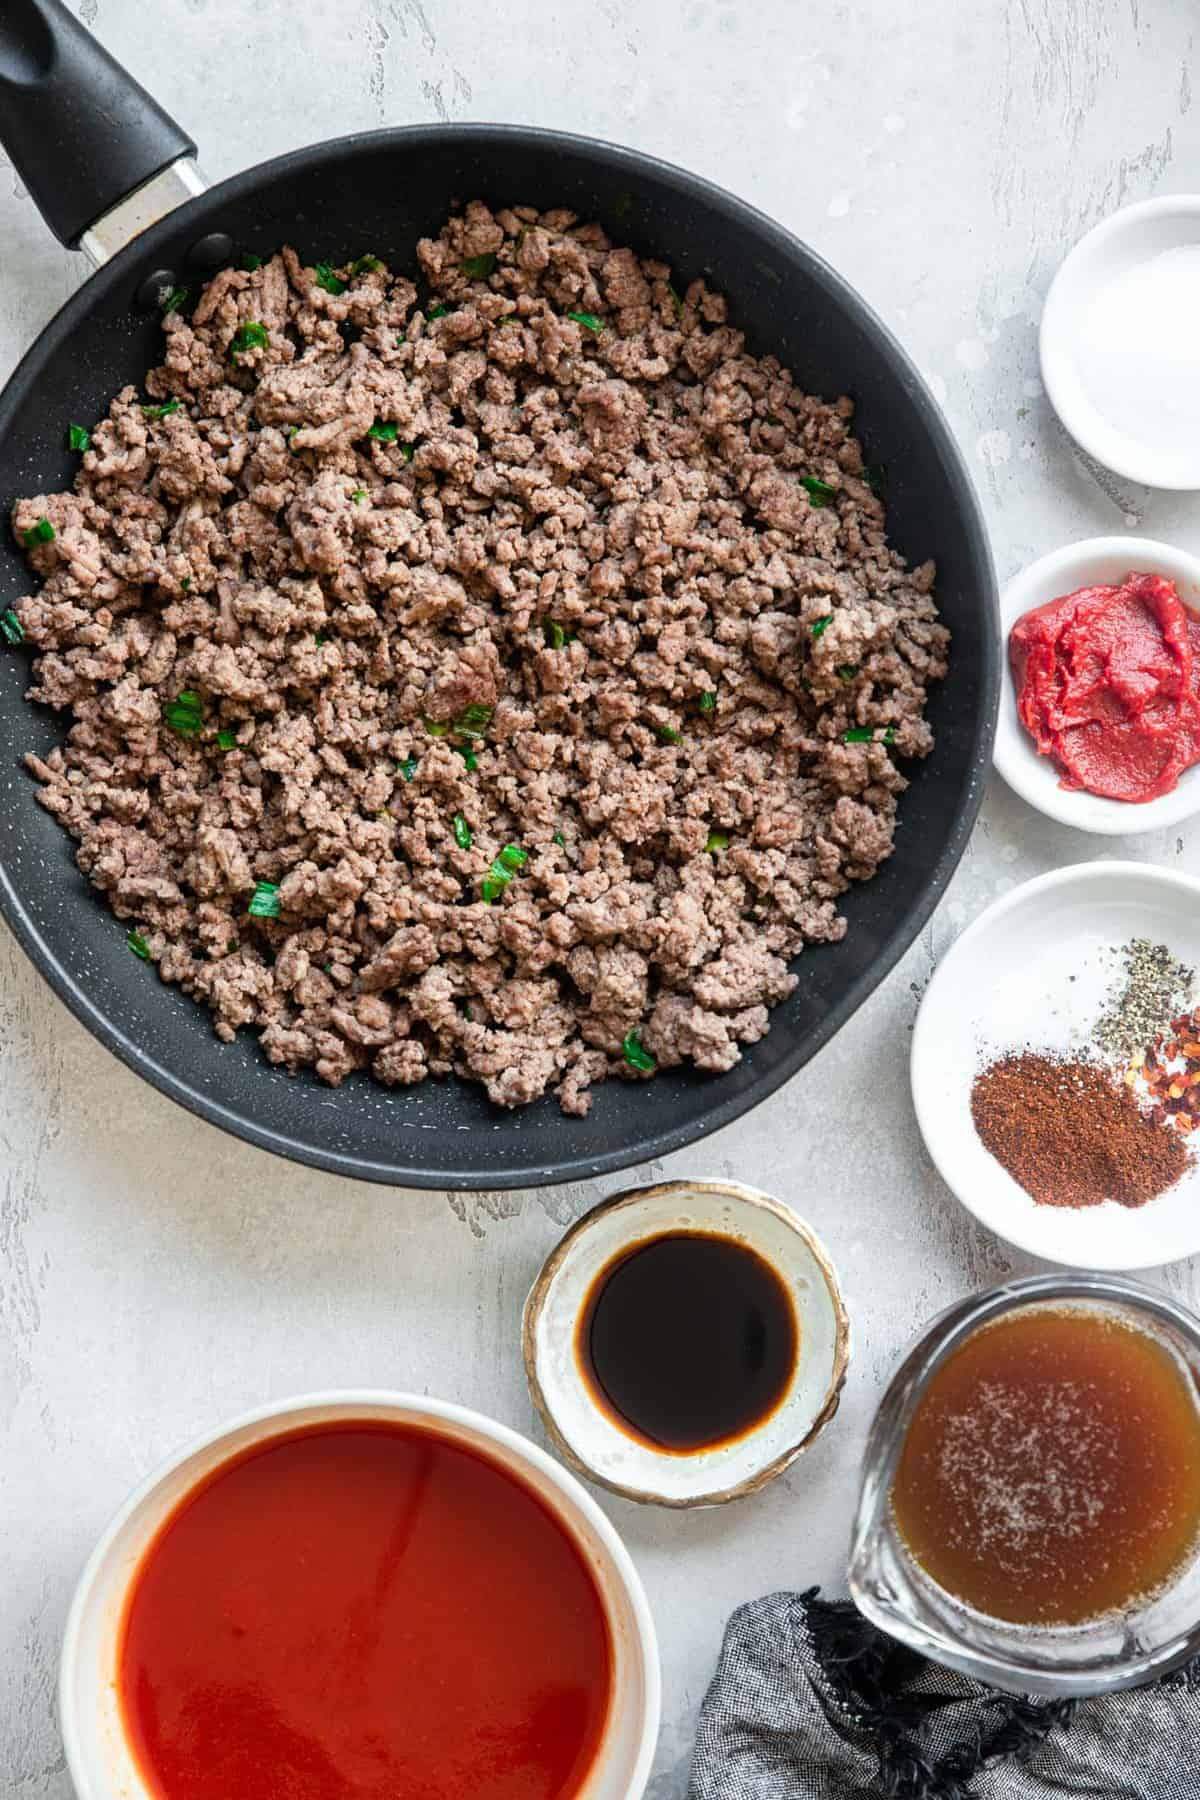 Ingredients to make Low Carb sloppy joes